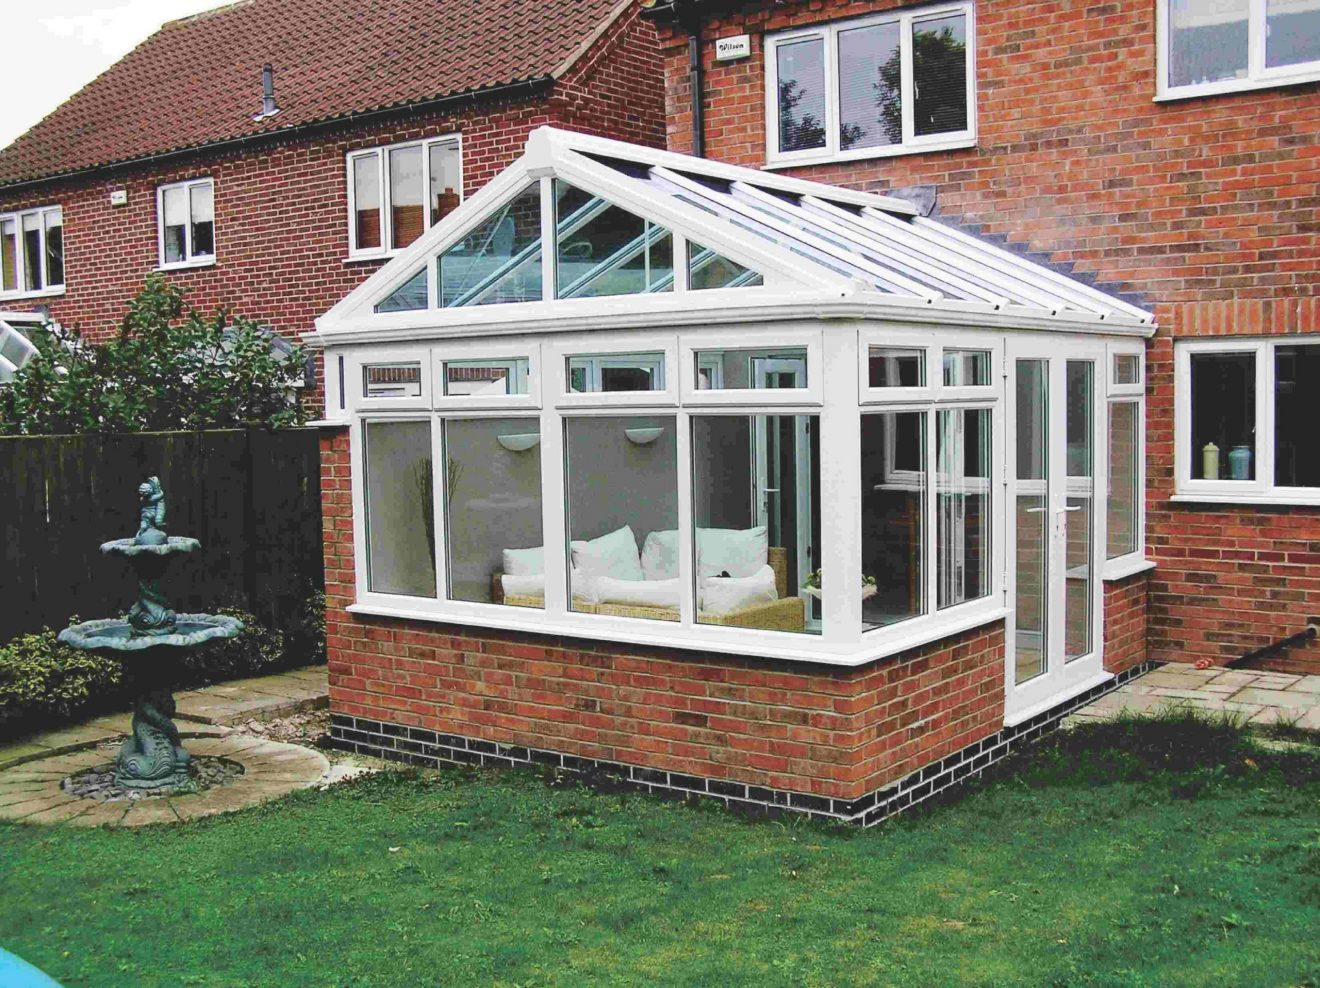 Give your house an elegant touch with Window Magic's Conservatory